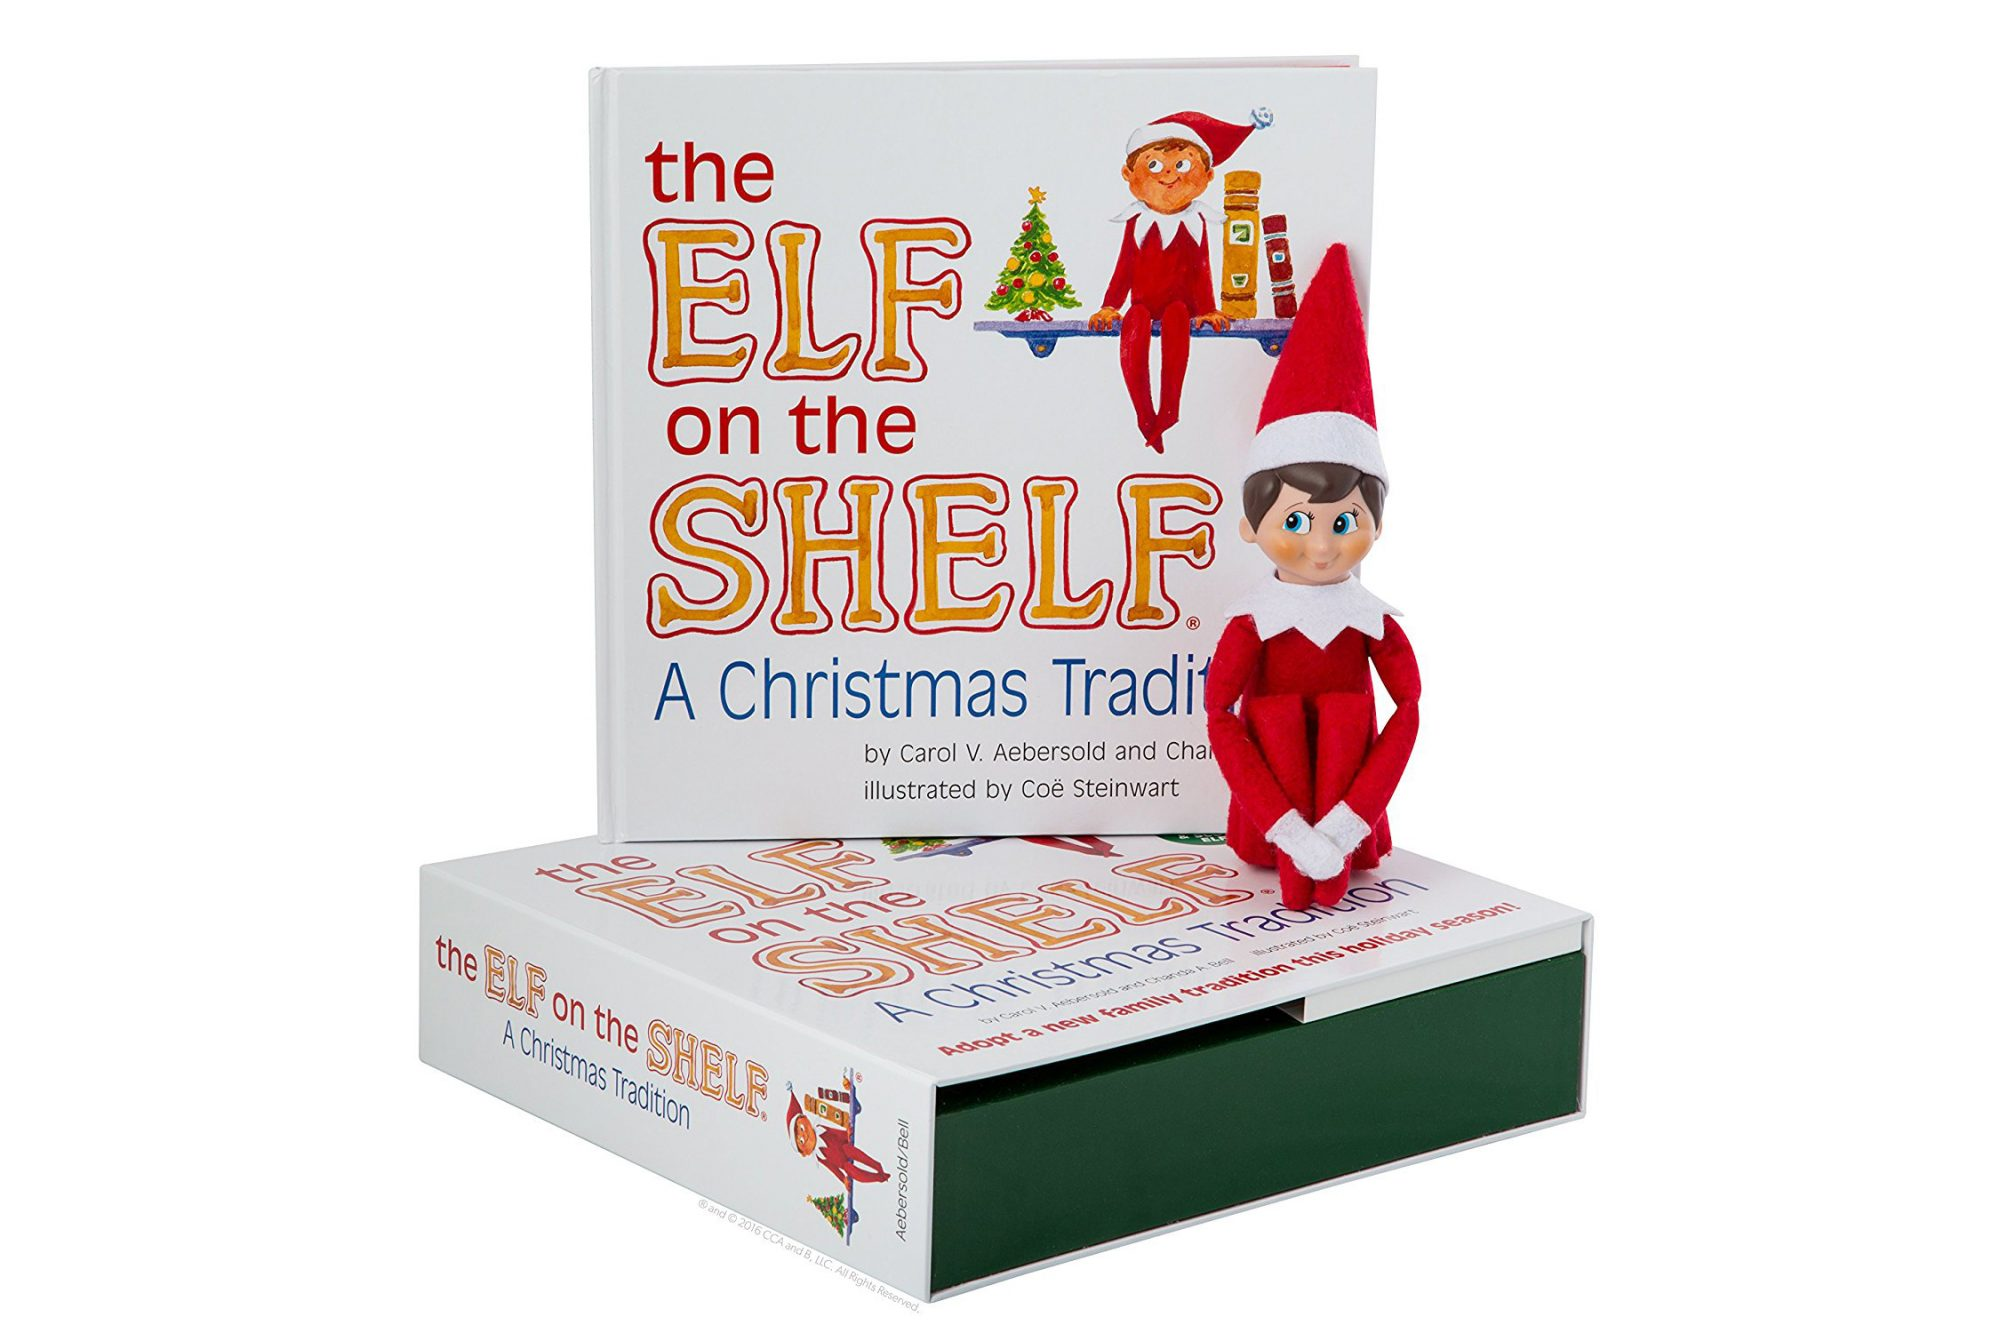 Elf on the Shelf: A Christmas Tradition, by Carol Aebersold and Chanda Bell